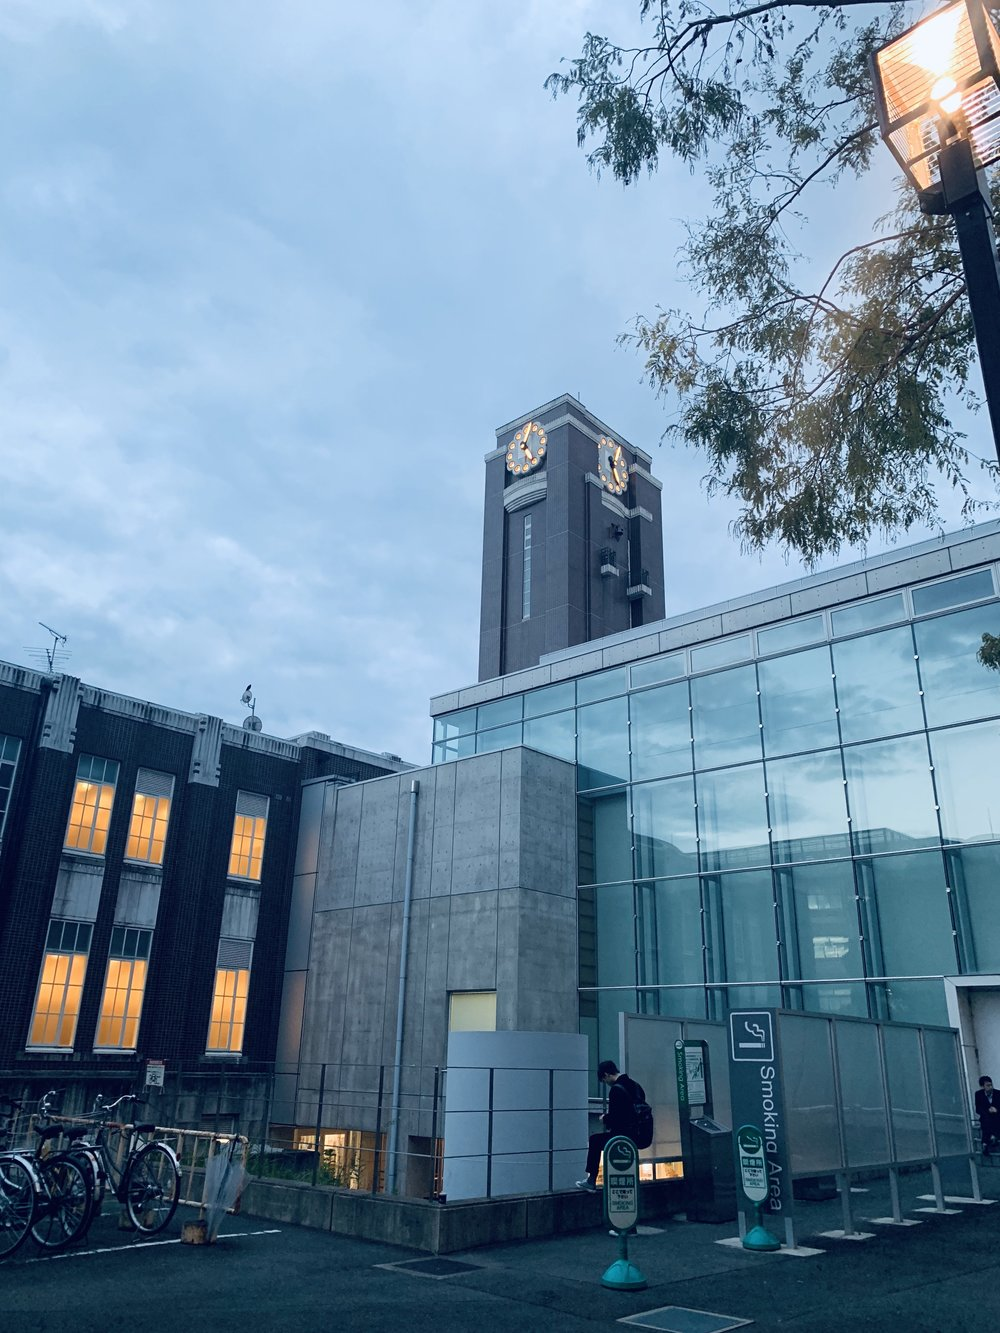 Kyoto University's Main Clock Tower Building